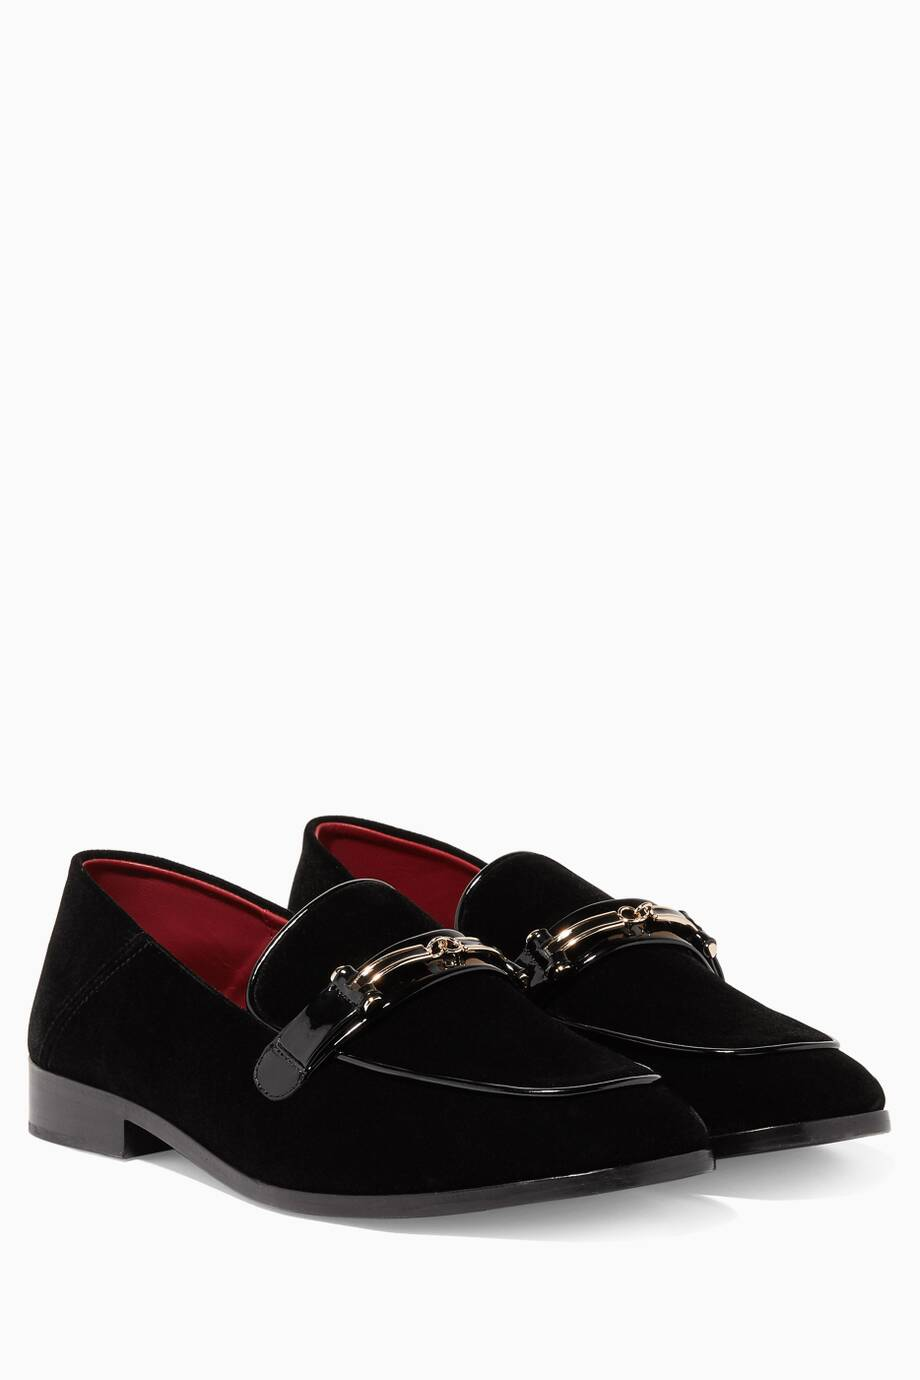 072907697bf Shop Luxury Newbark Black Melanie Velvet Loafers